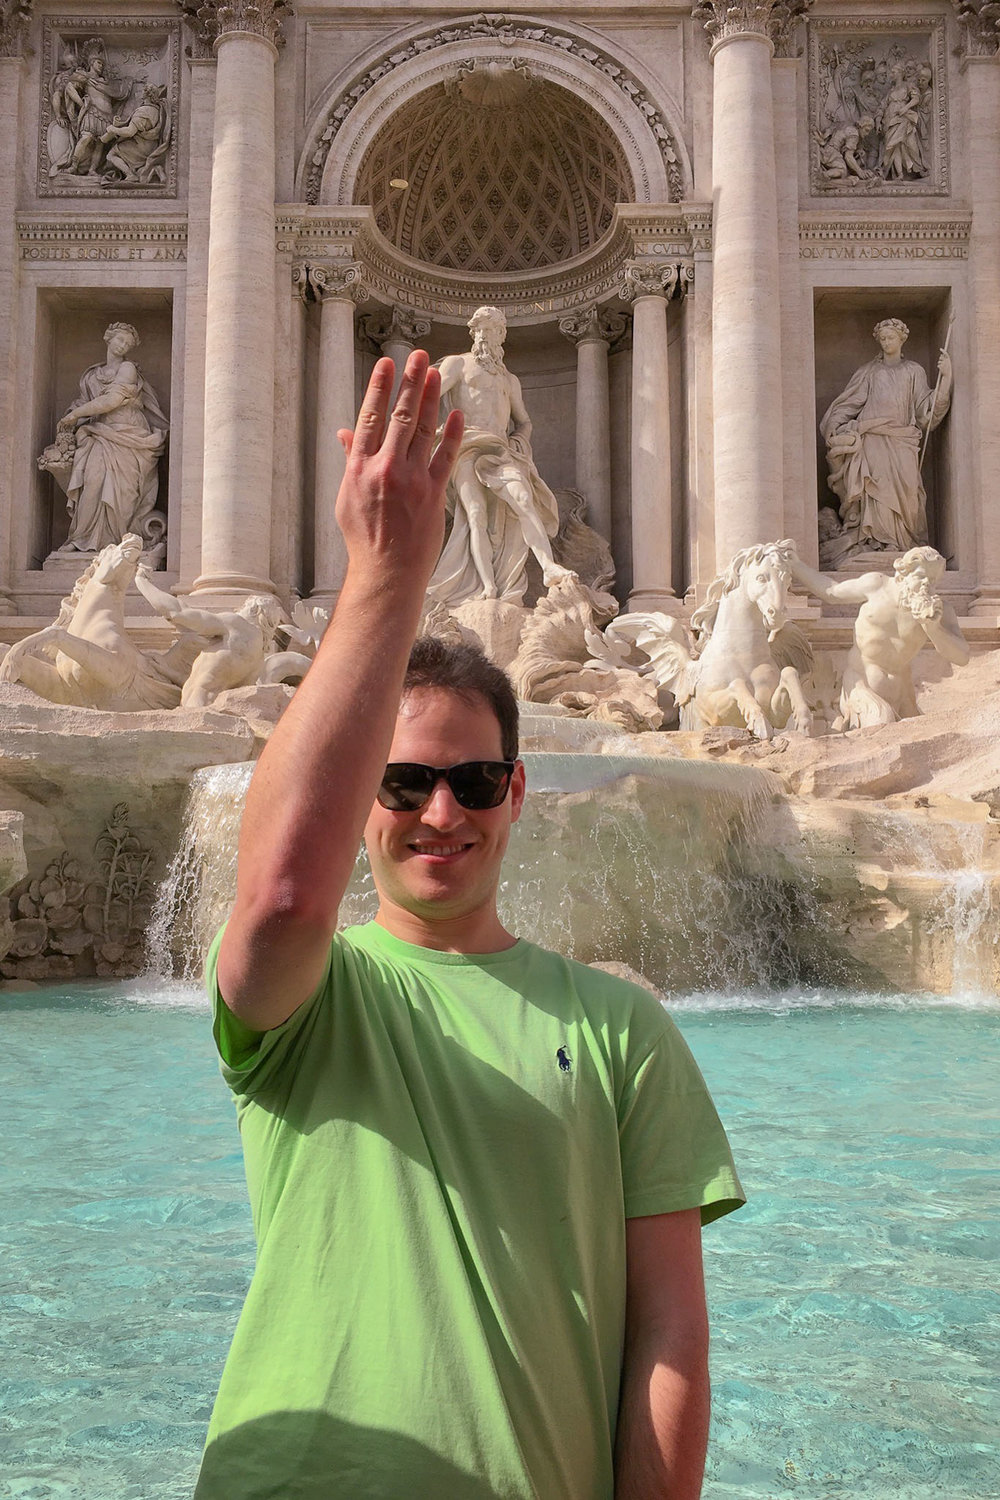 Dan tossing a coin in the Trevi Fountain. If you know, you know.